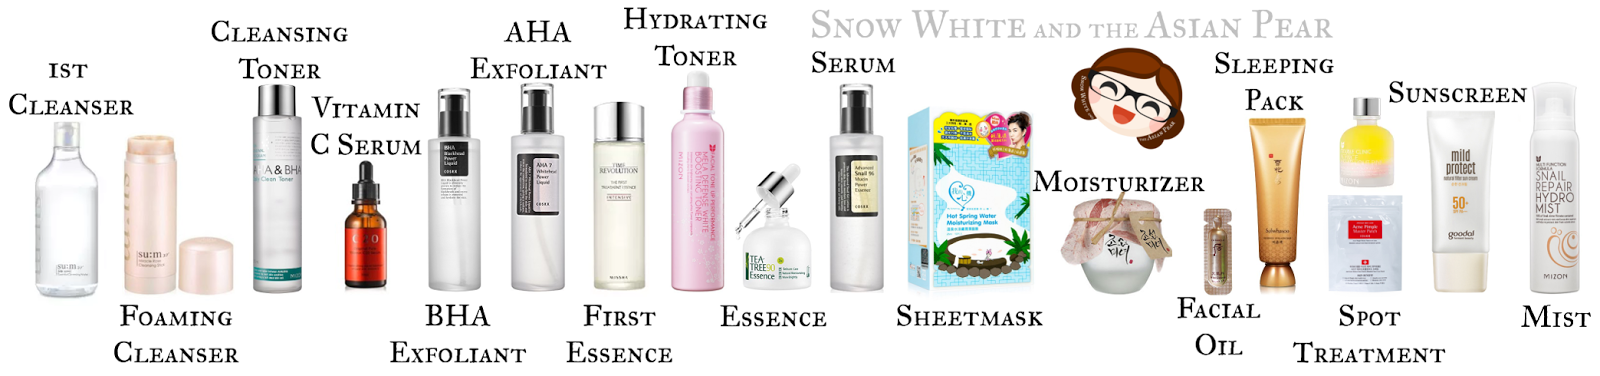 皮肤care product routine in order